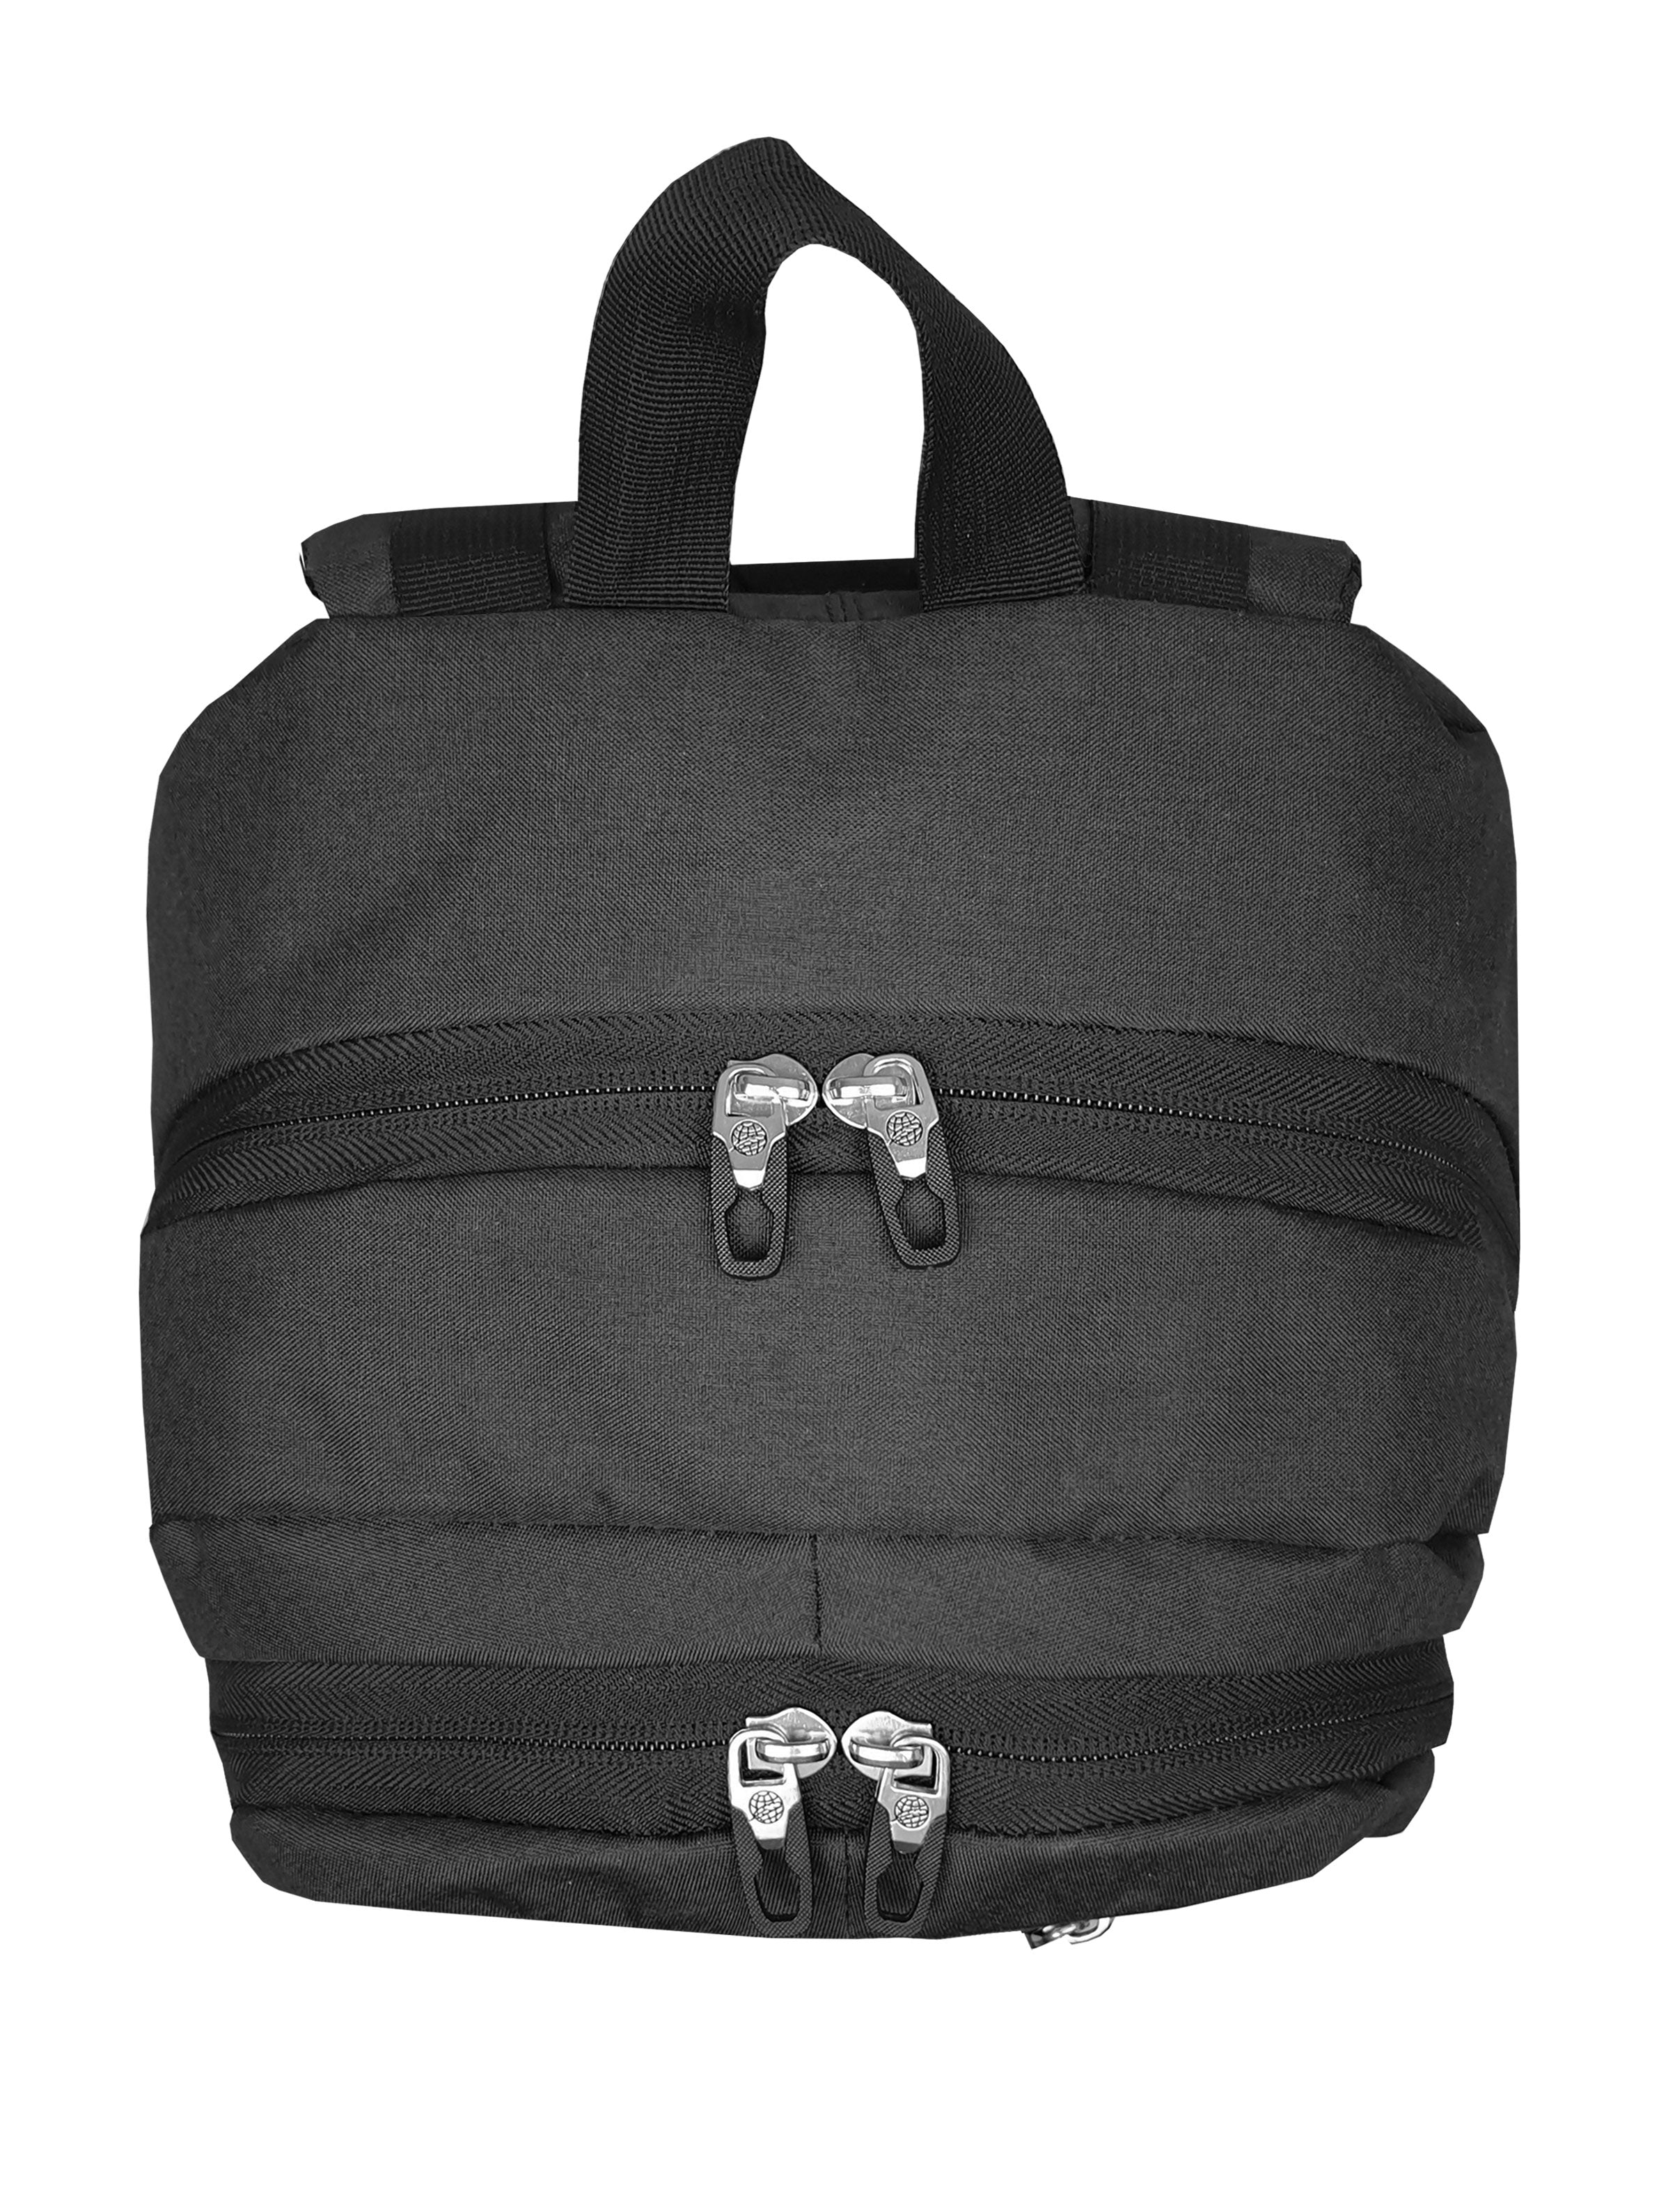 Padded Laptop Backpack RL44t s